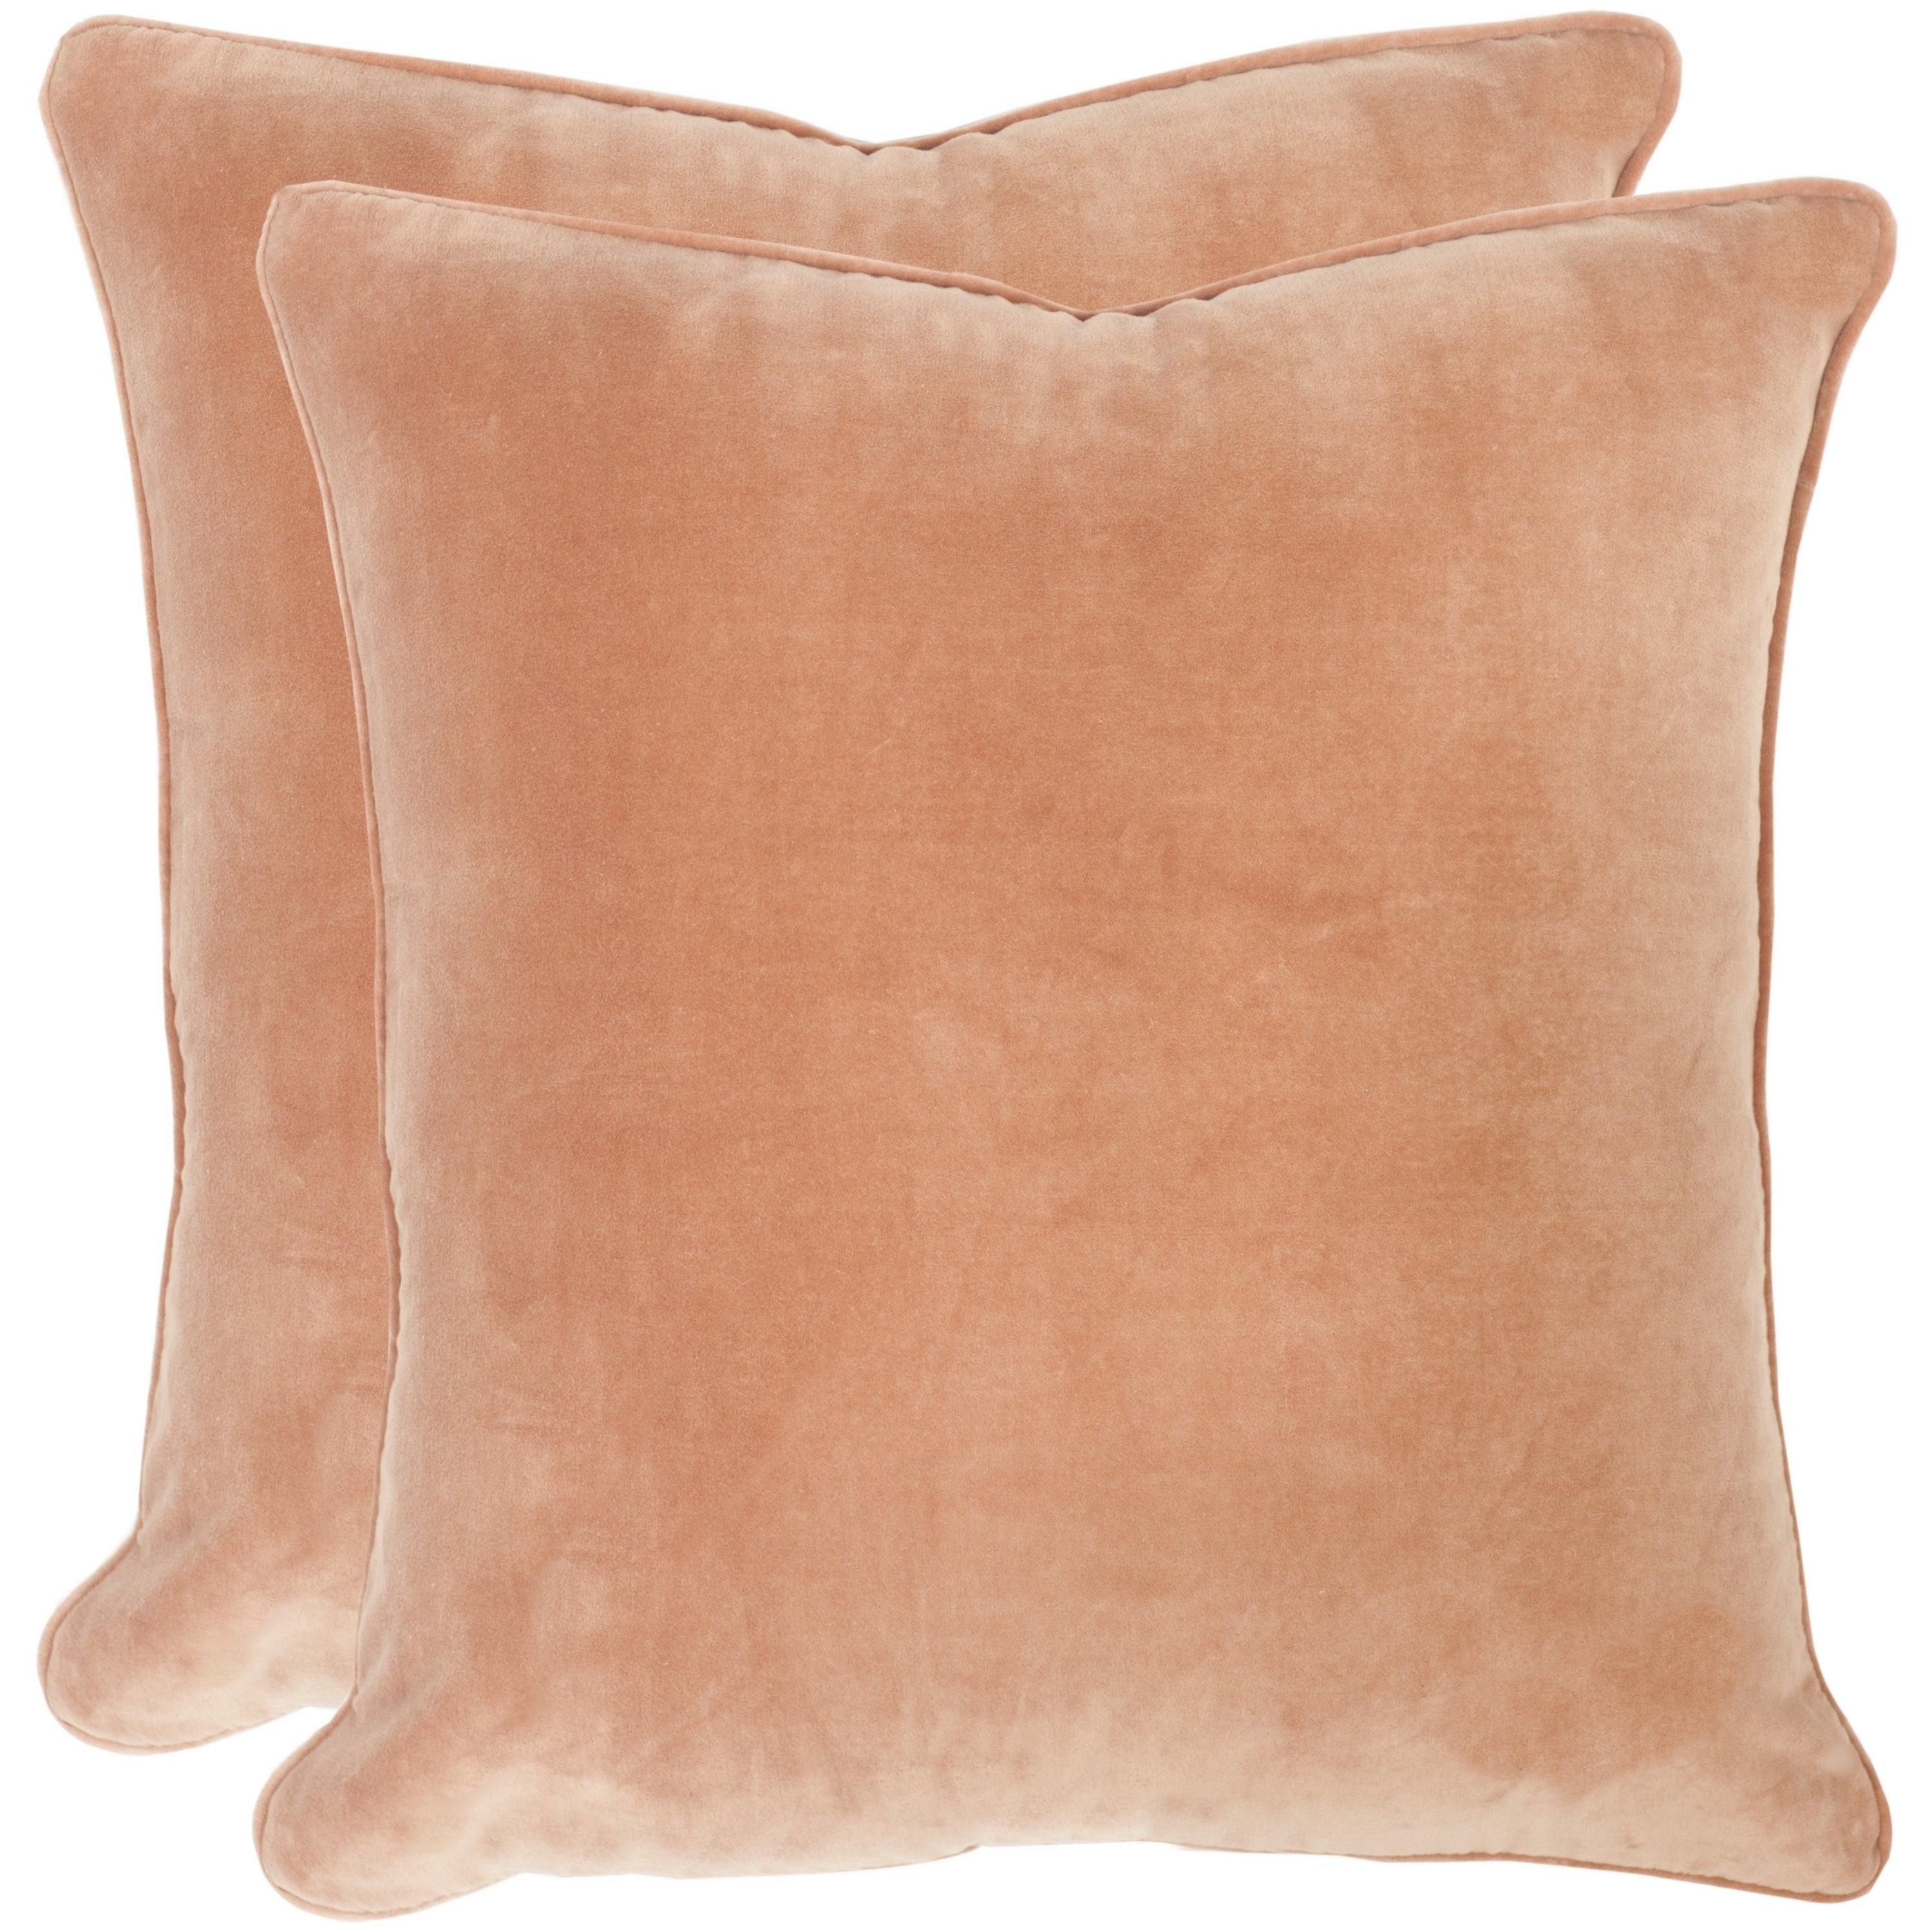 textiles and lumbar furniture master more decor at f id for peach obi red gold decorative pair of collectibles throws sale floral woven pillows